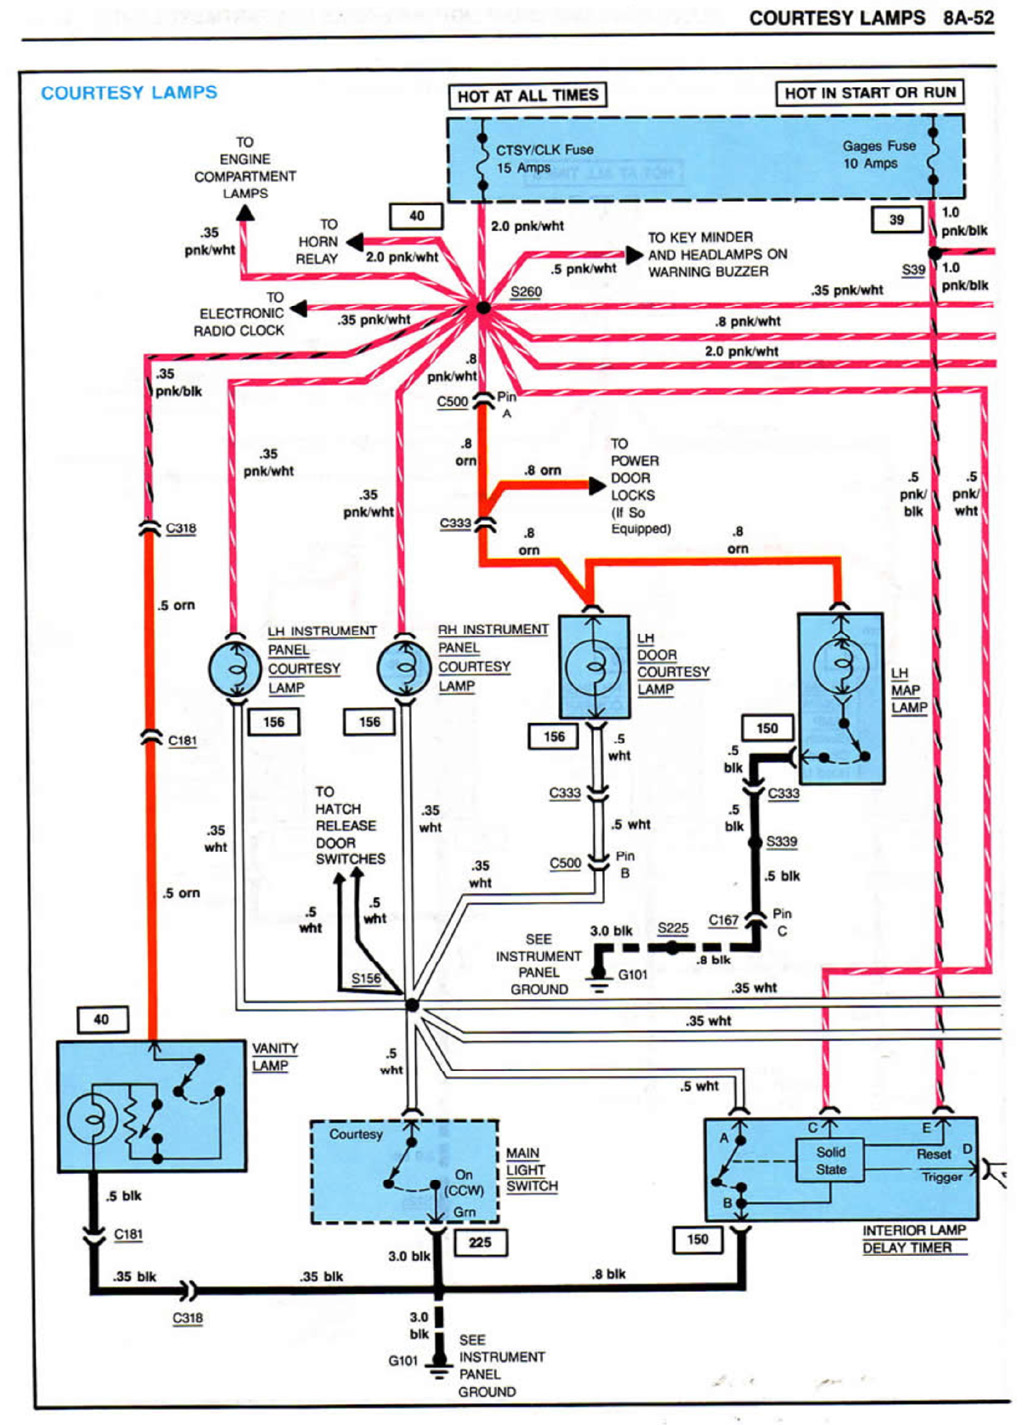 1984_Corvette_Courtesy_Lamps1 mesmerizing c4 corvette wiring diagram gallery best image 2000 C5 Corvette Wiring Diagram at gsmx.co